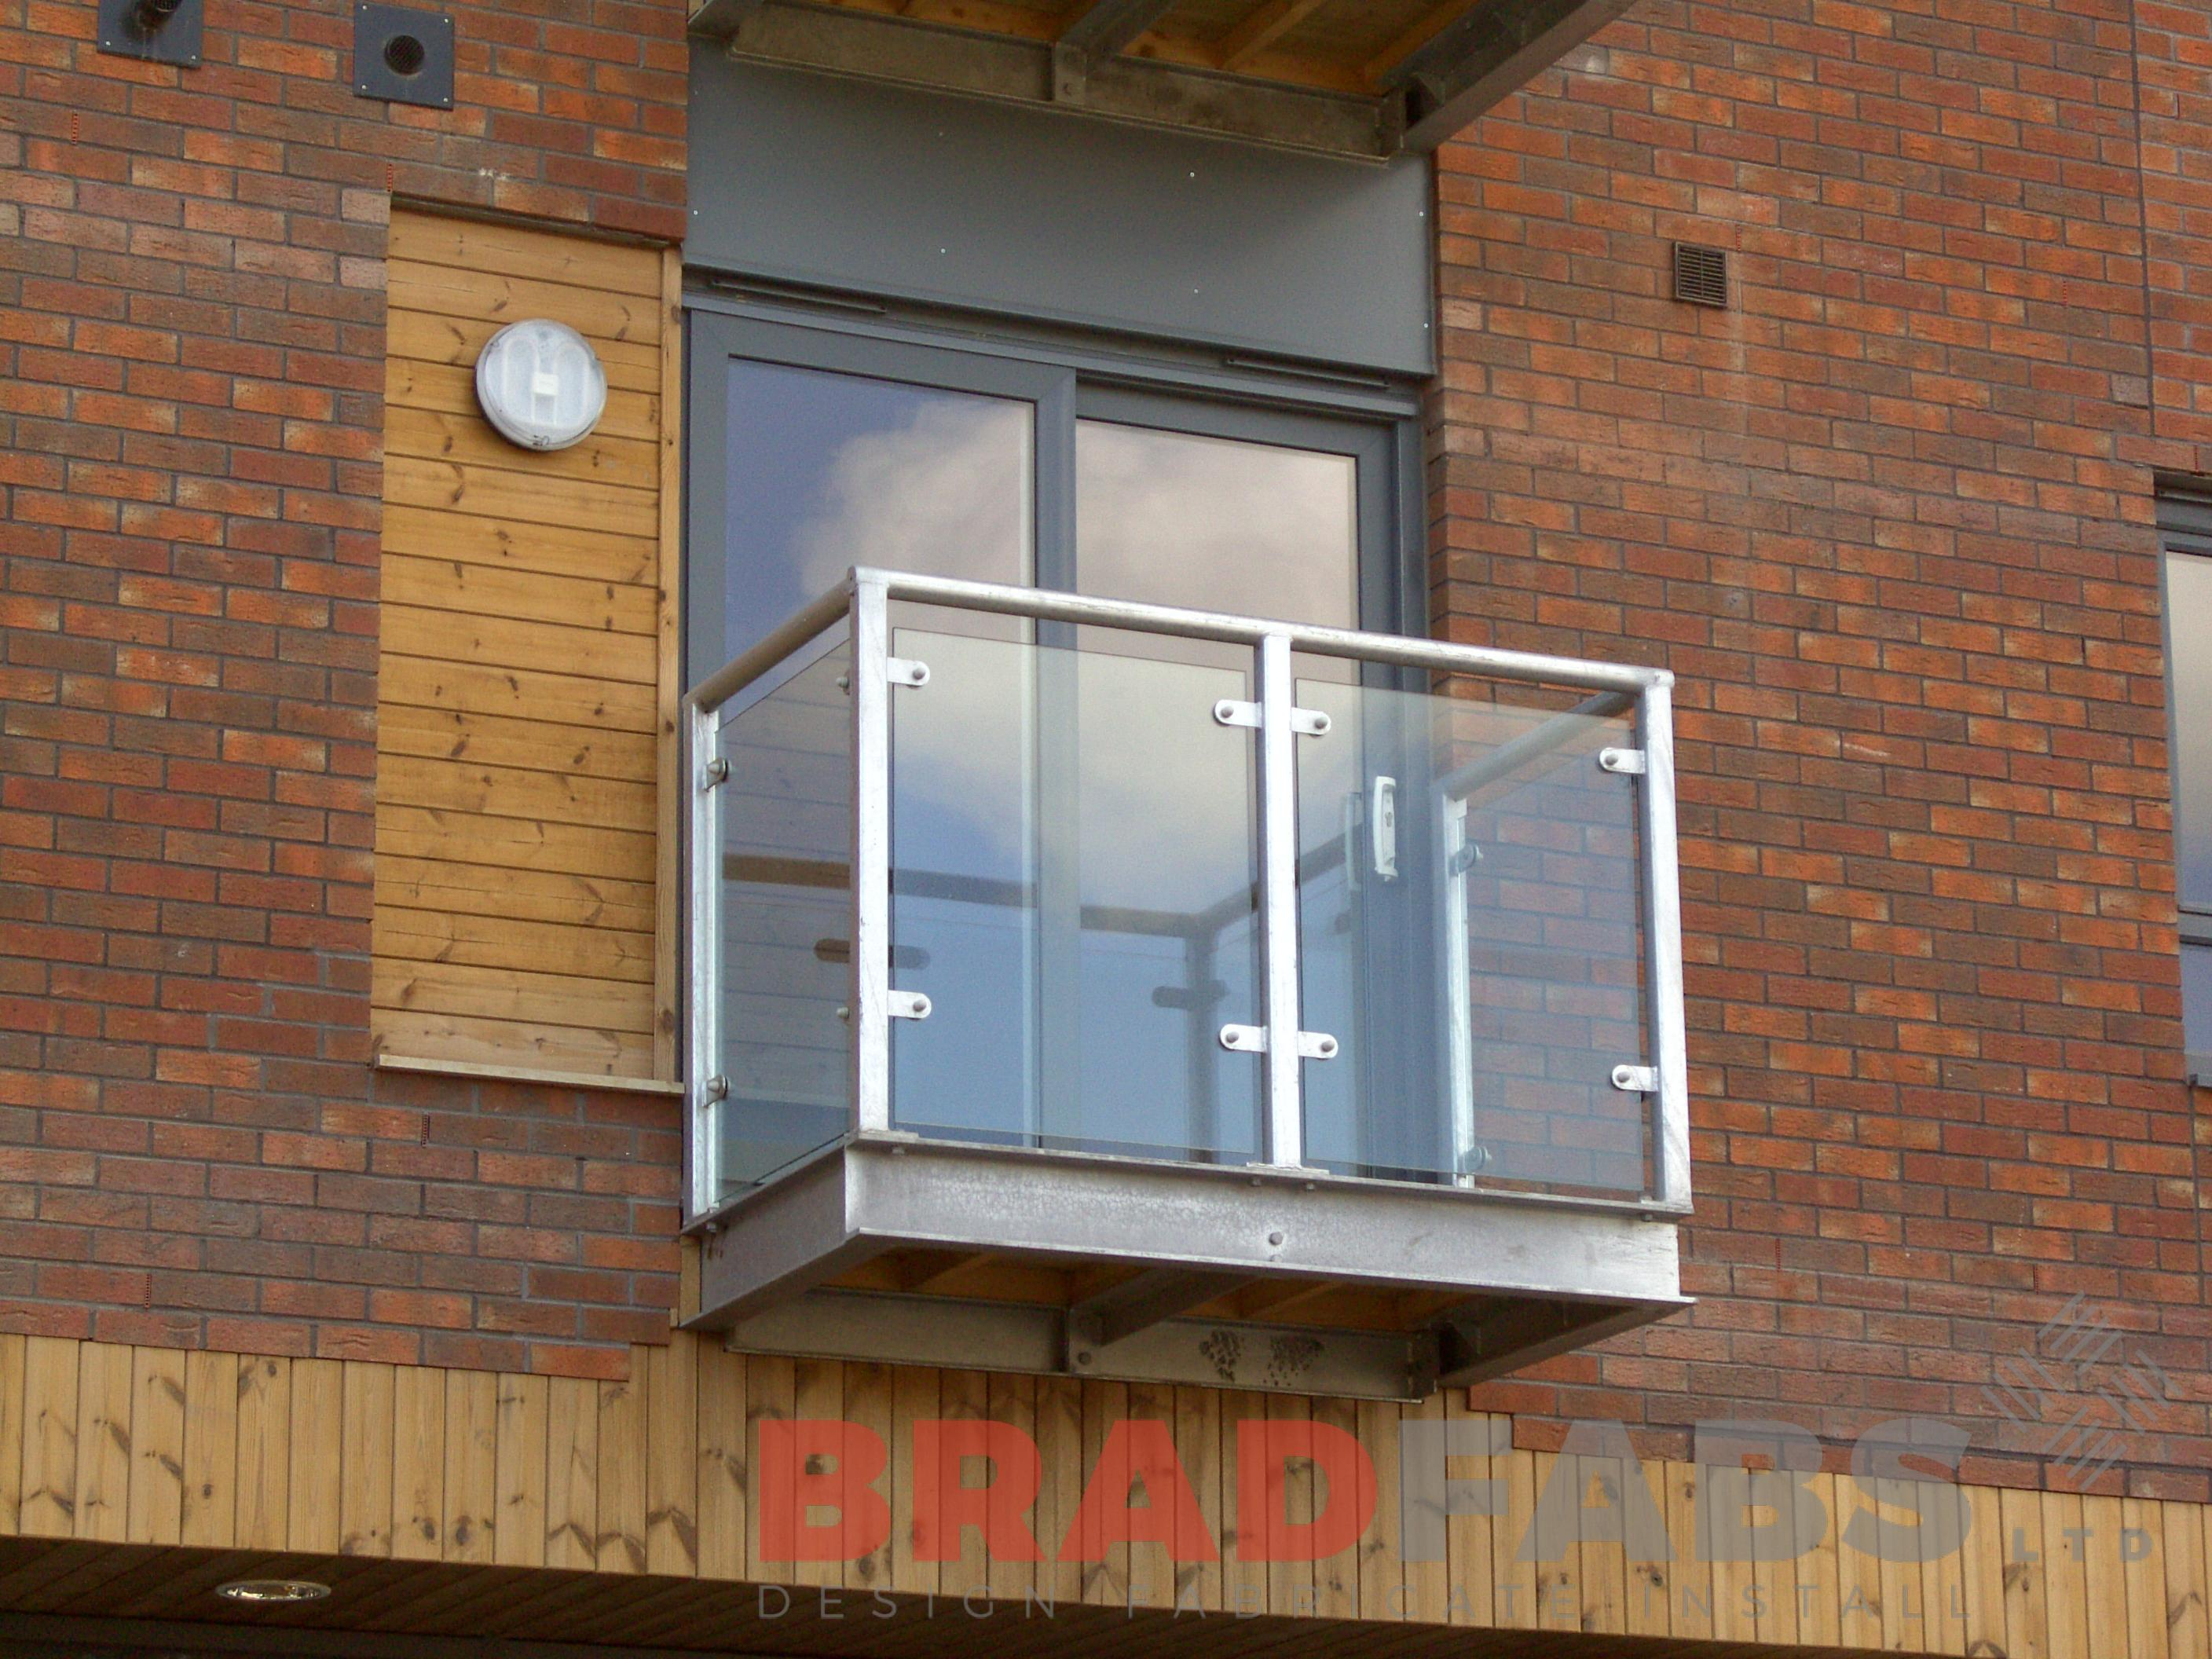 High Quanity Balconies fabricated by Bradfabs in England